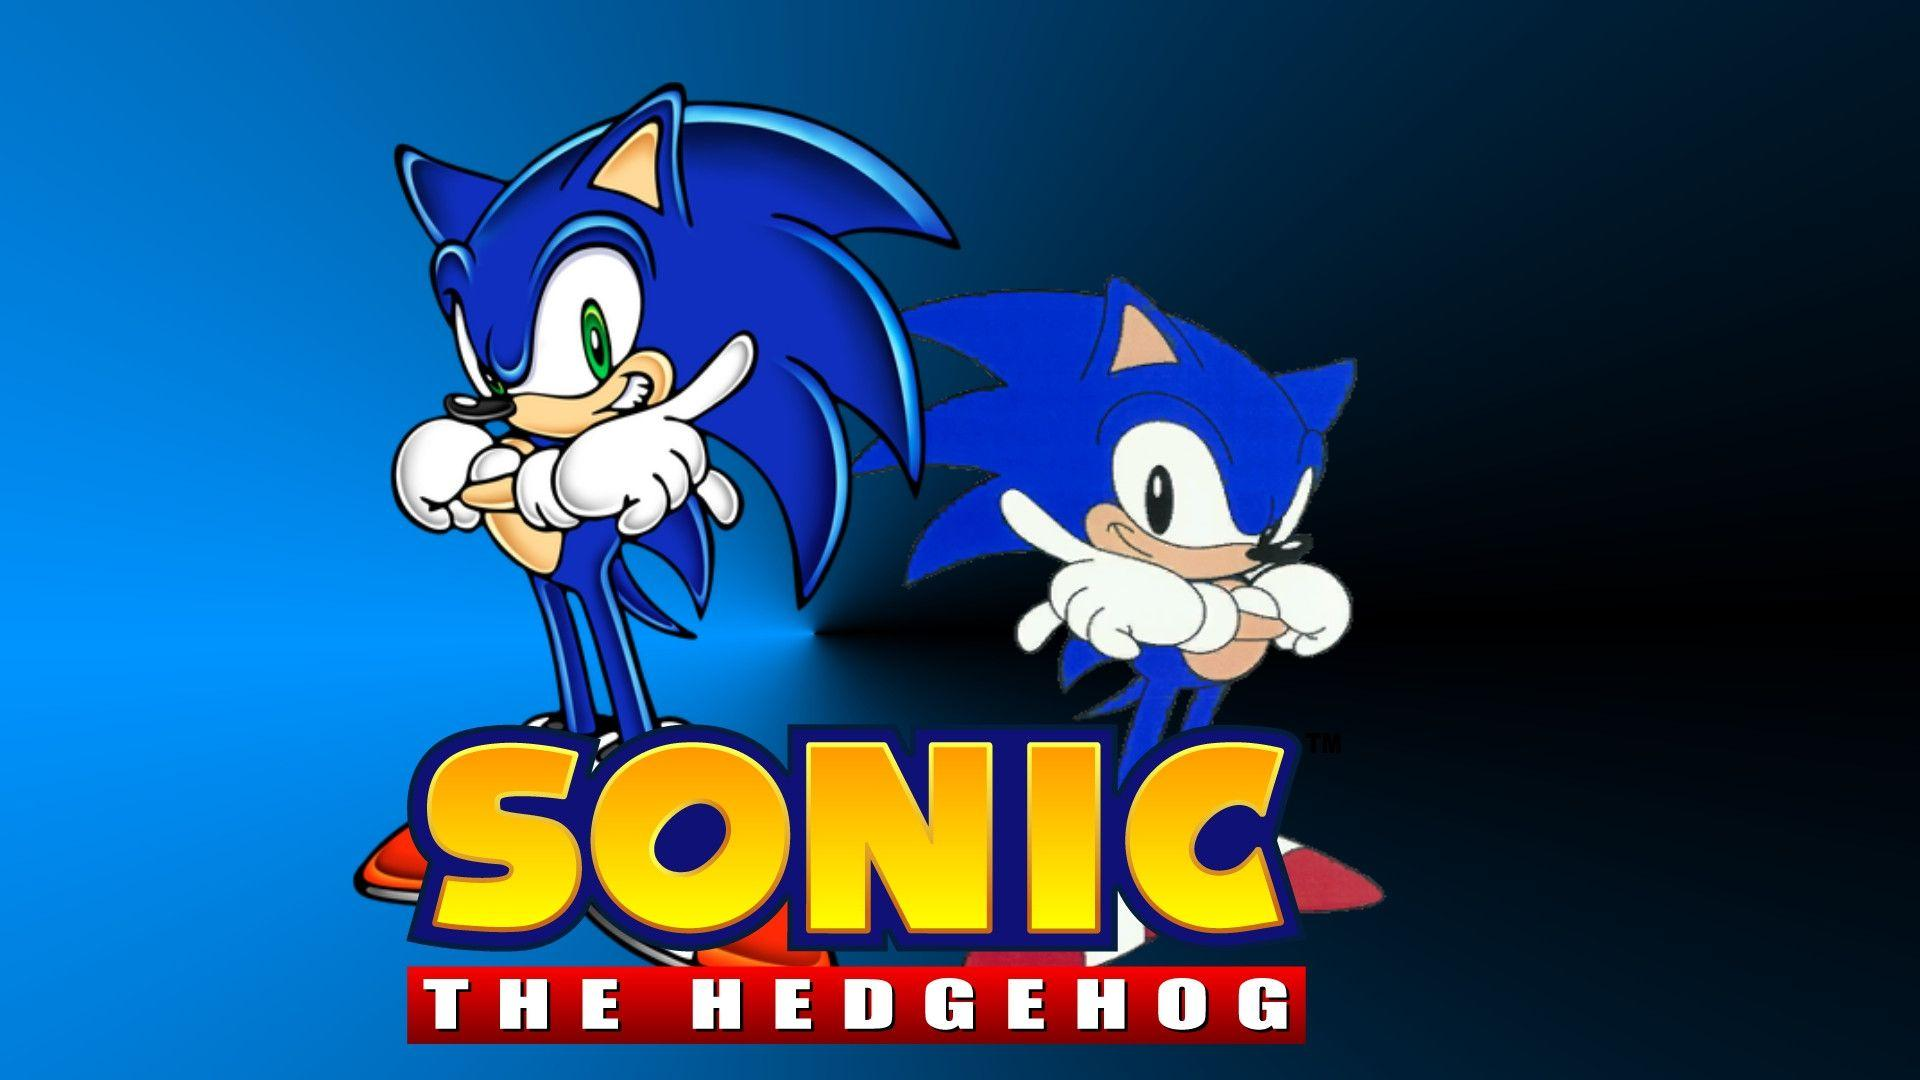 Sonic the hedgehog wallpapers by BlueSpeed360